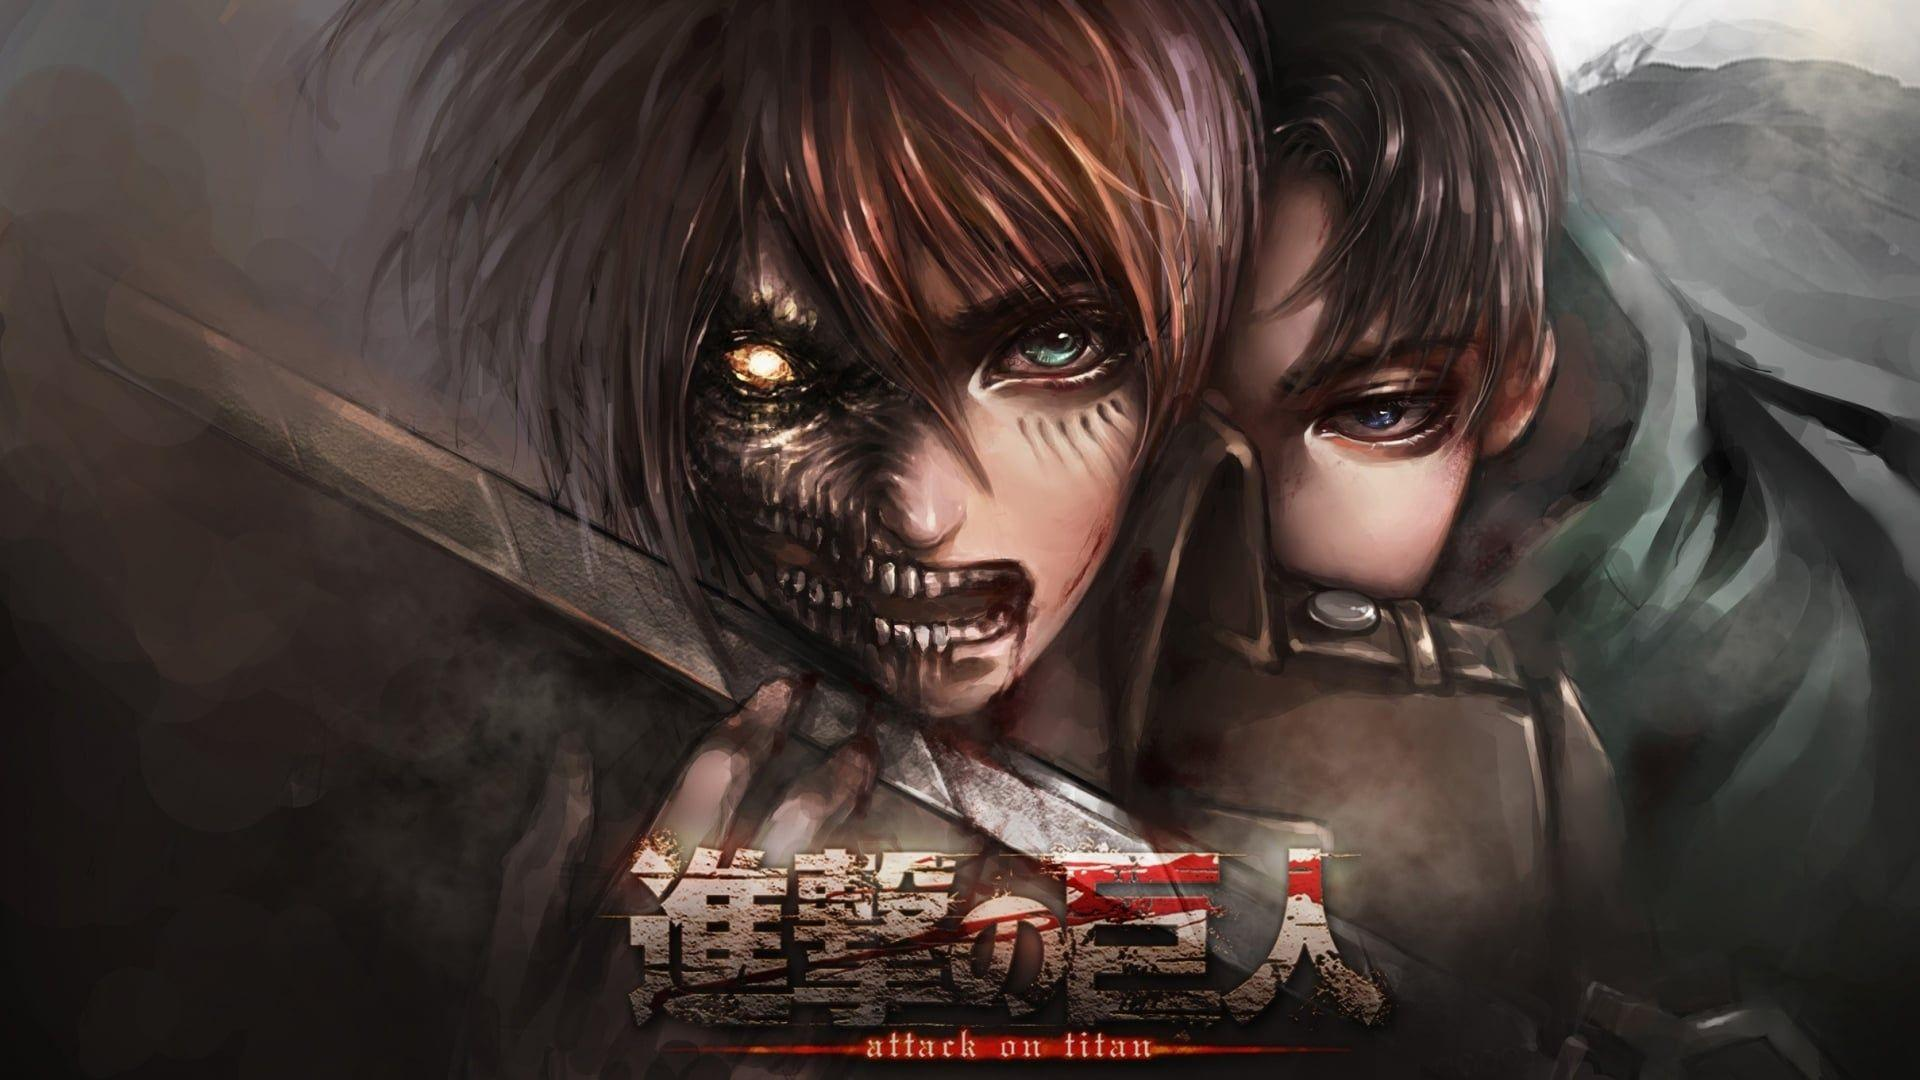 Attack on Titan Chapter 139 Release Date, Spoilers And Time